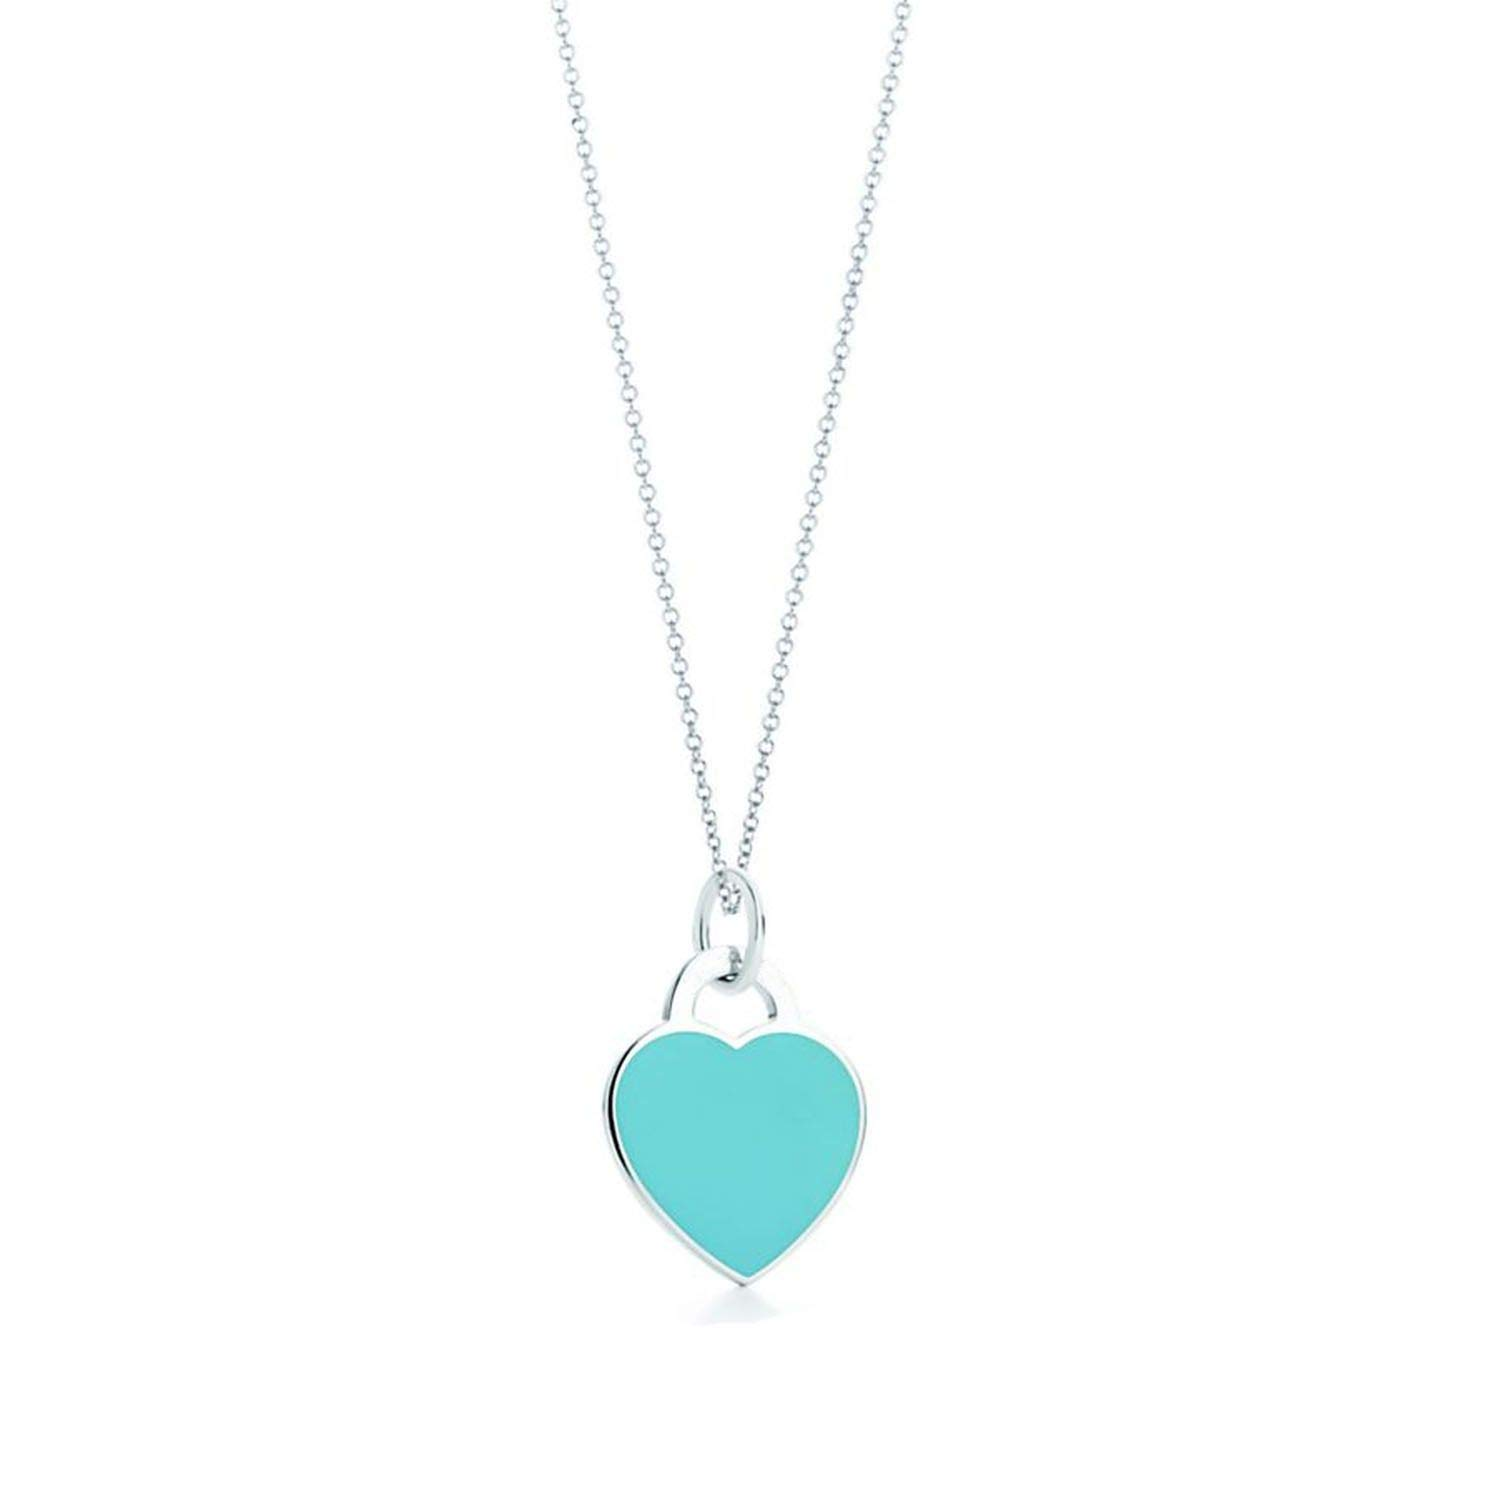 xinchengquzhihao Tiny Heart Necklace/&Pendant Blue/&Pink/&Red Stainless Steel Chain Engraved Letter Necklace Charm Women Jewelry